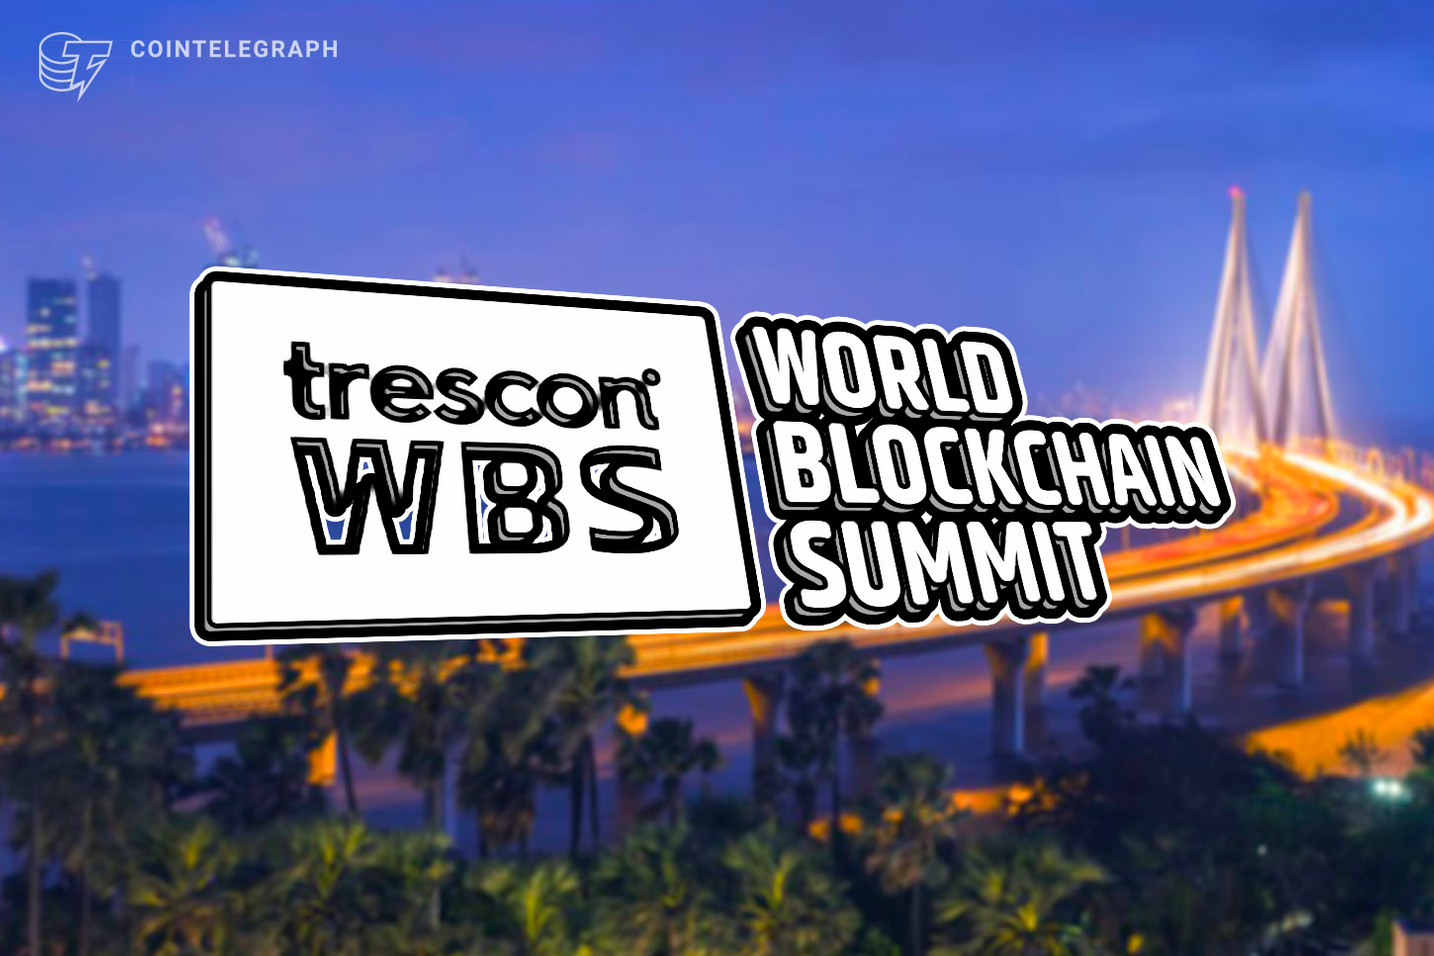 Maharashtra Government Officially Endorses World Blockchain Summit